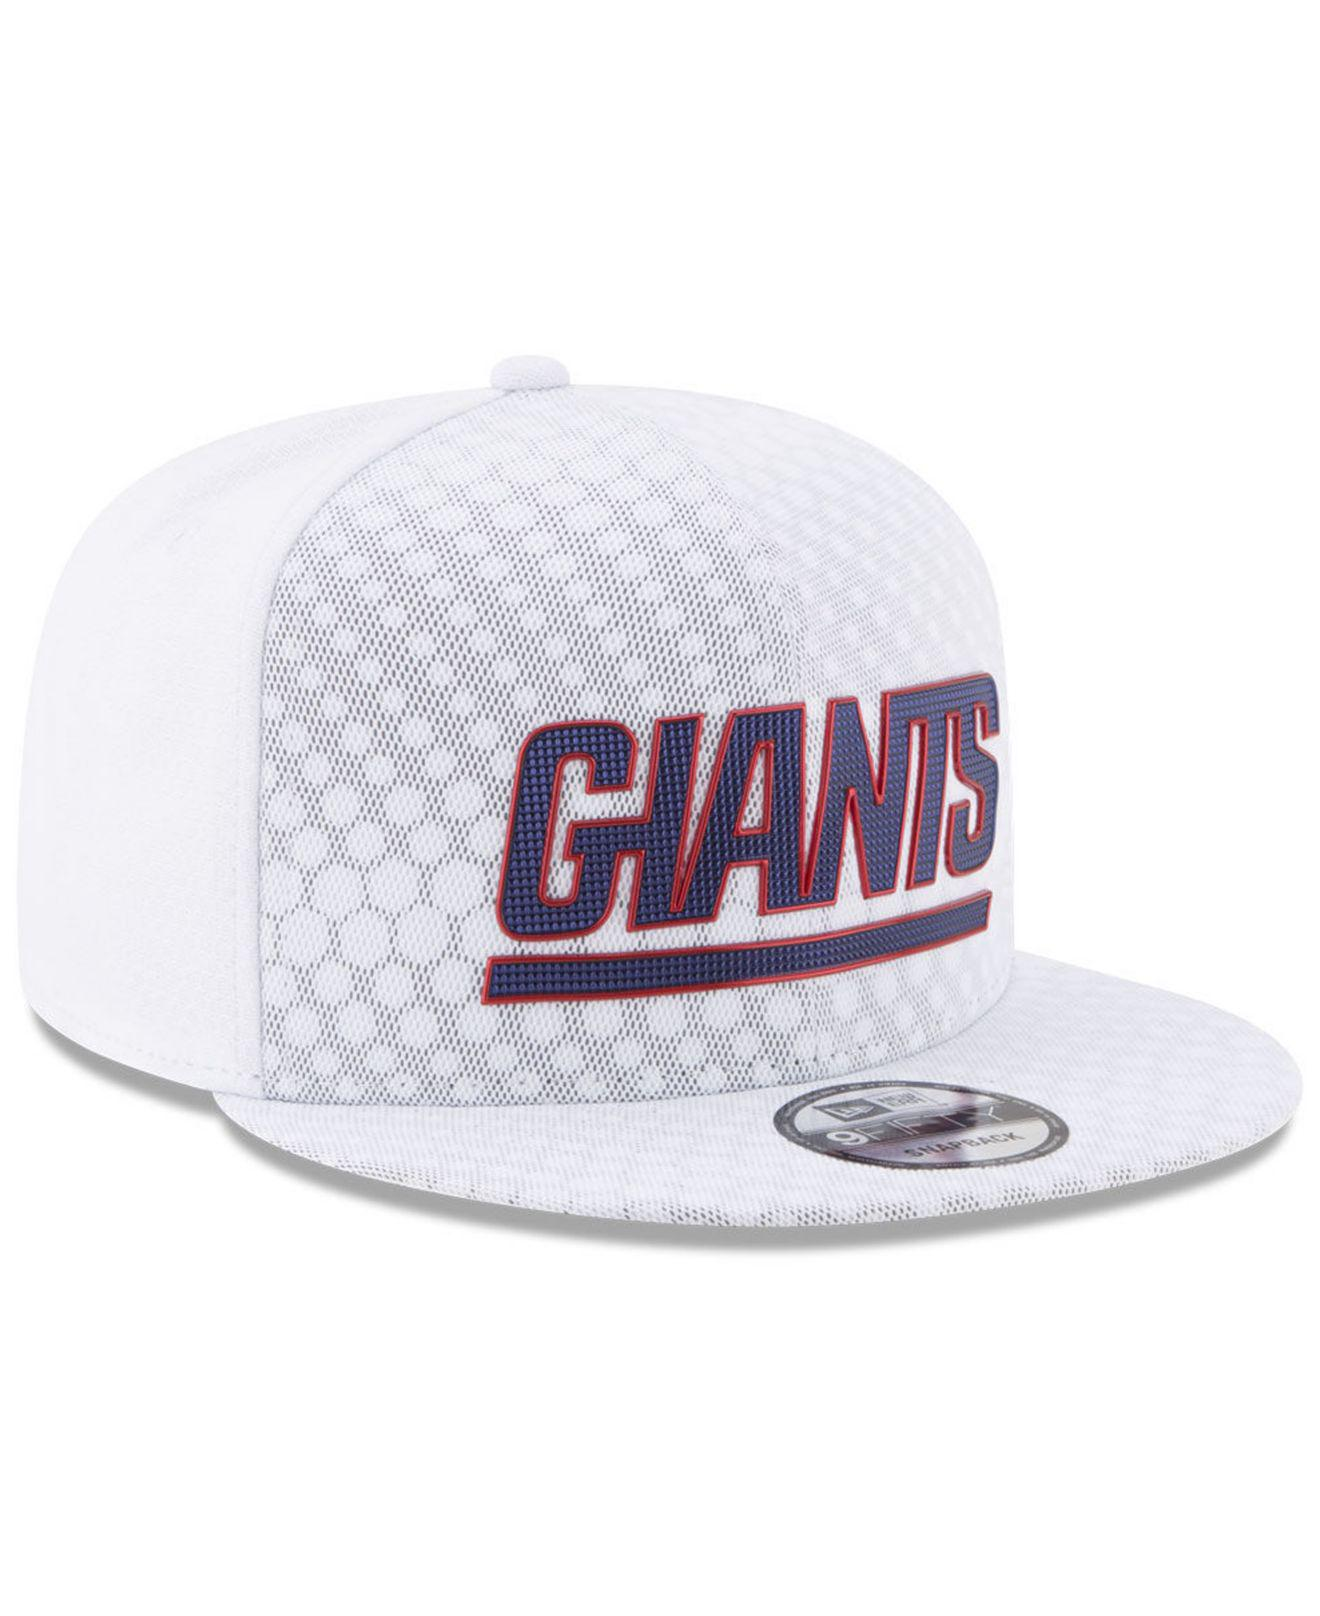 c3cc0794401 Lyst - KTZ New York Giants On Field Color Rush 9fifty Snapback Cap ...